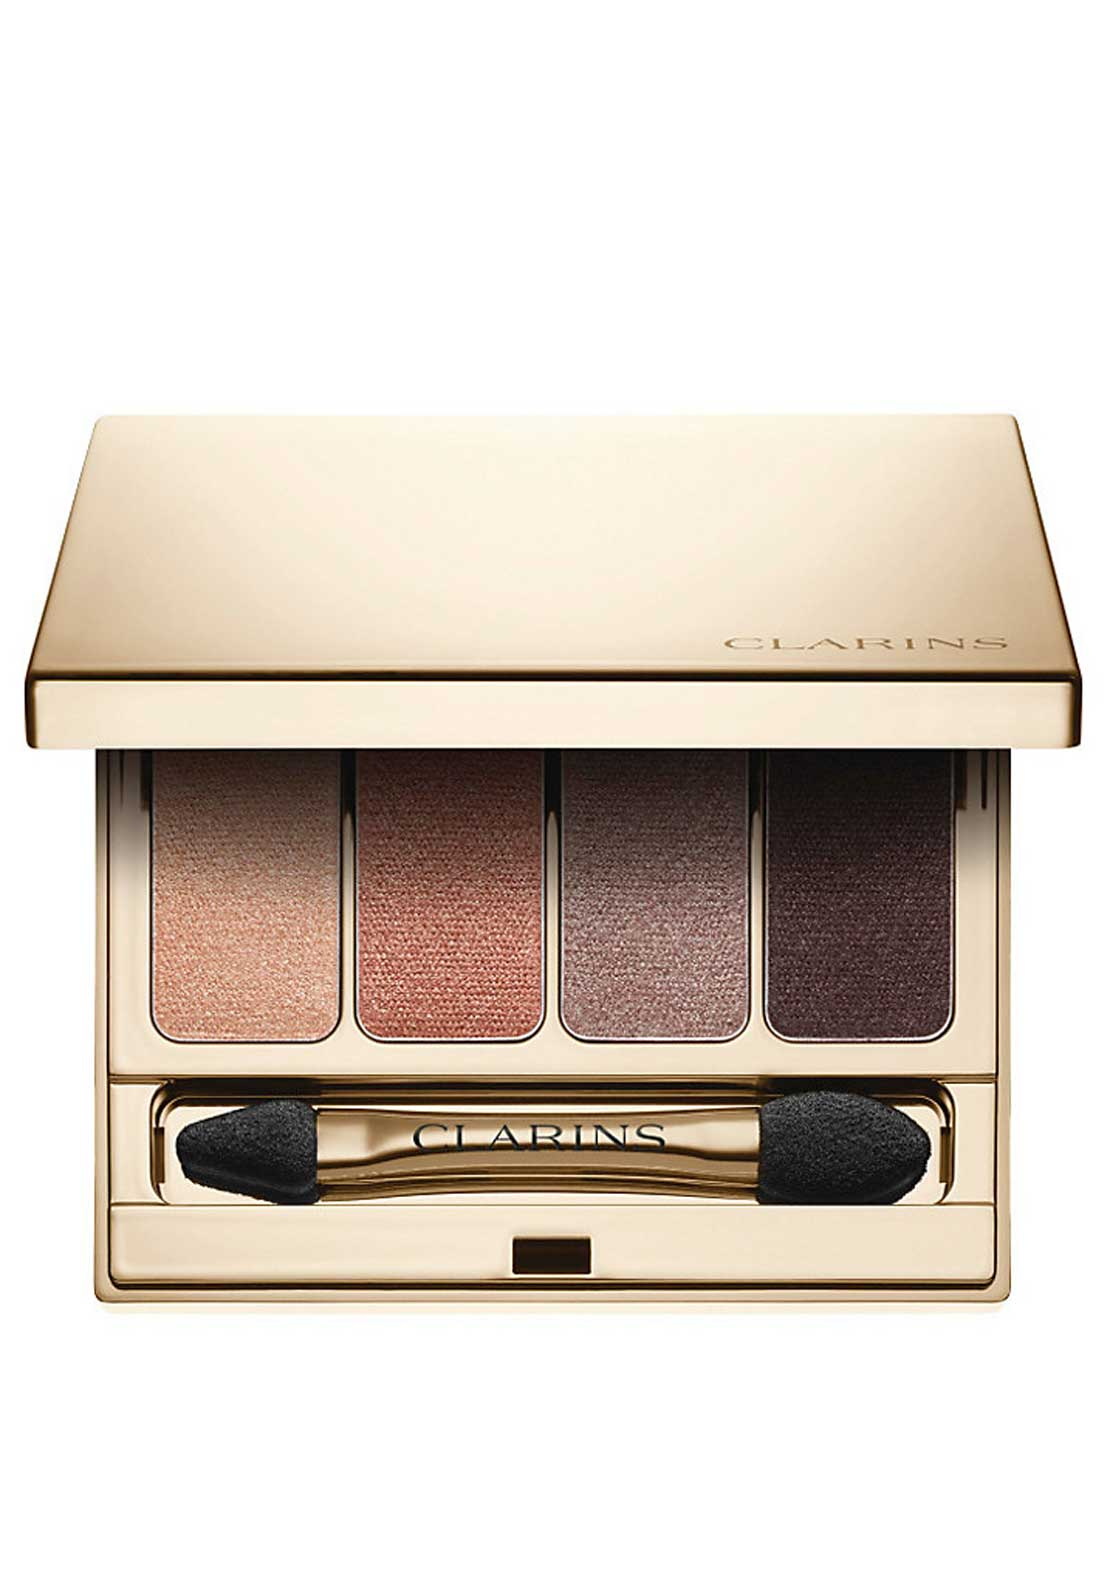 Clarins Wet & Dry Eyeshadow Palette 4 Colours, Nude 01